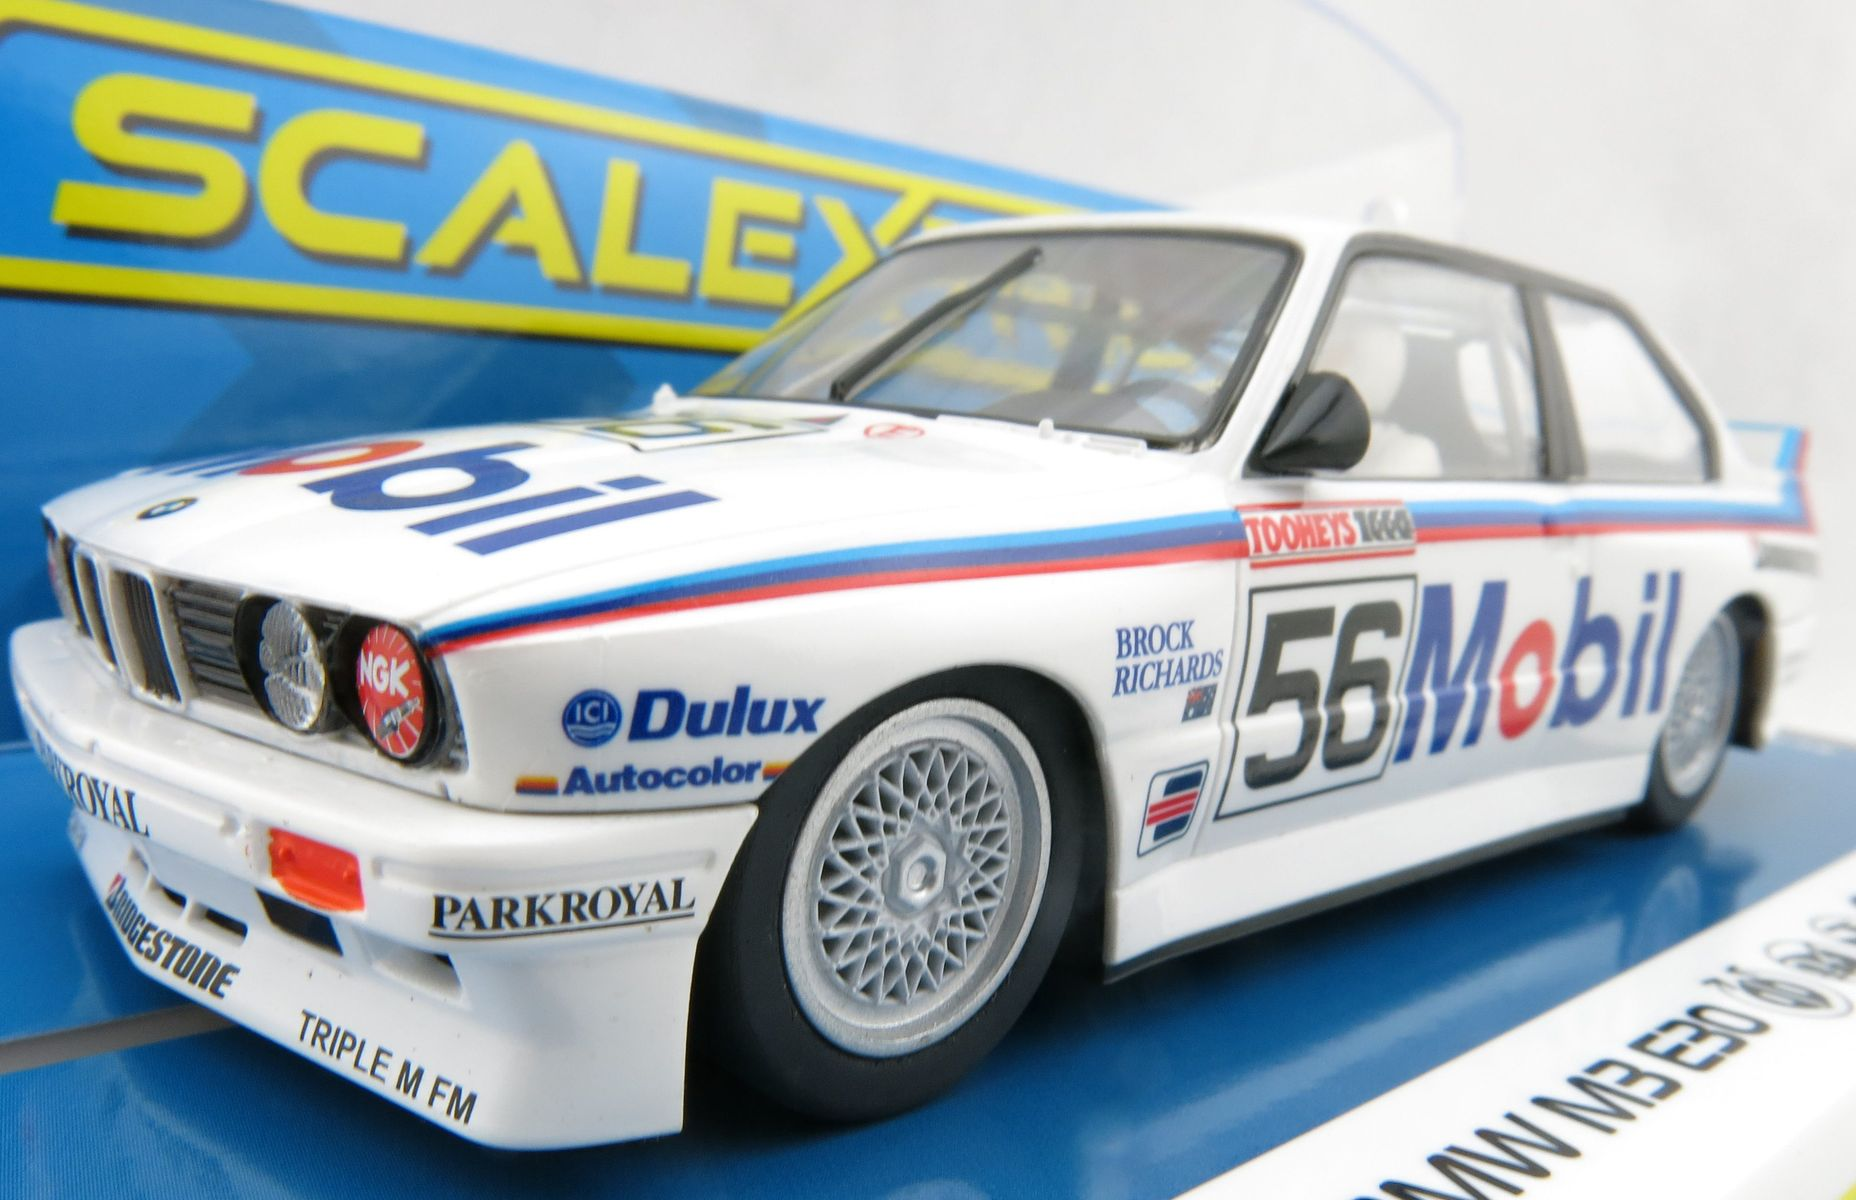 Details About Scalextric C3929 Bmw E30 M3 1988 Bathurst 1000 Brock Richards Scale 1 32